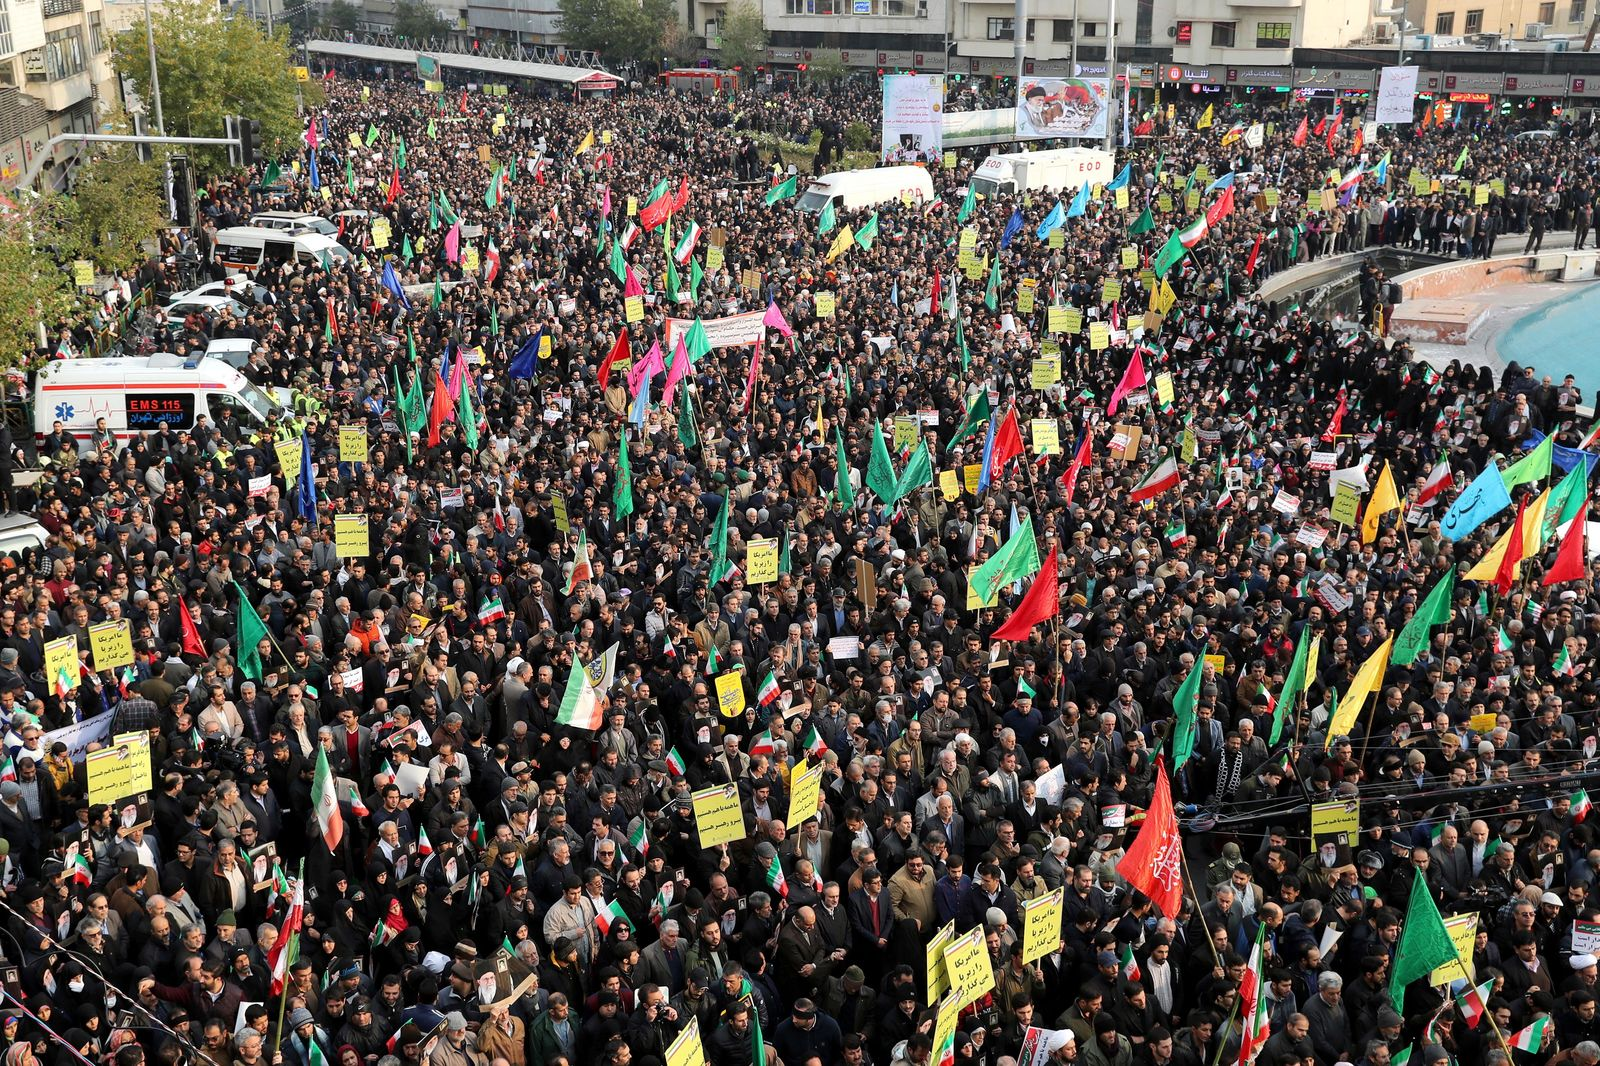 Demonstrators attend a pro-government rally organized by authorities in Iran denouncing last week's violent protests over a fuel price hike, in Tehran, Iran, Monday, Nov. 25, 2019. (AP Photo/Ebrahim Noroozi)